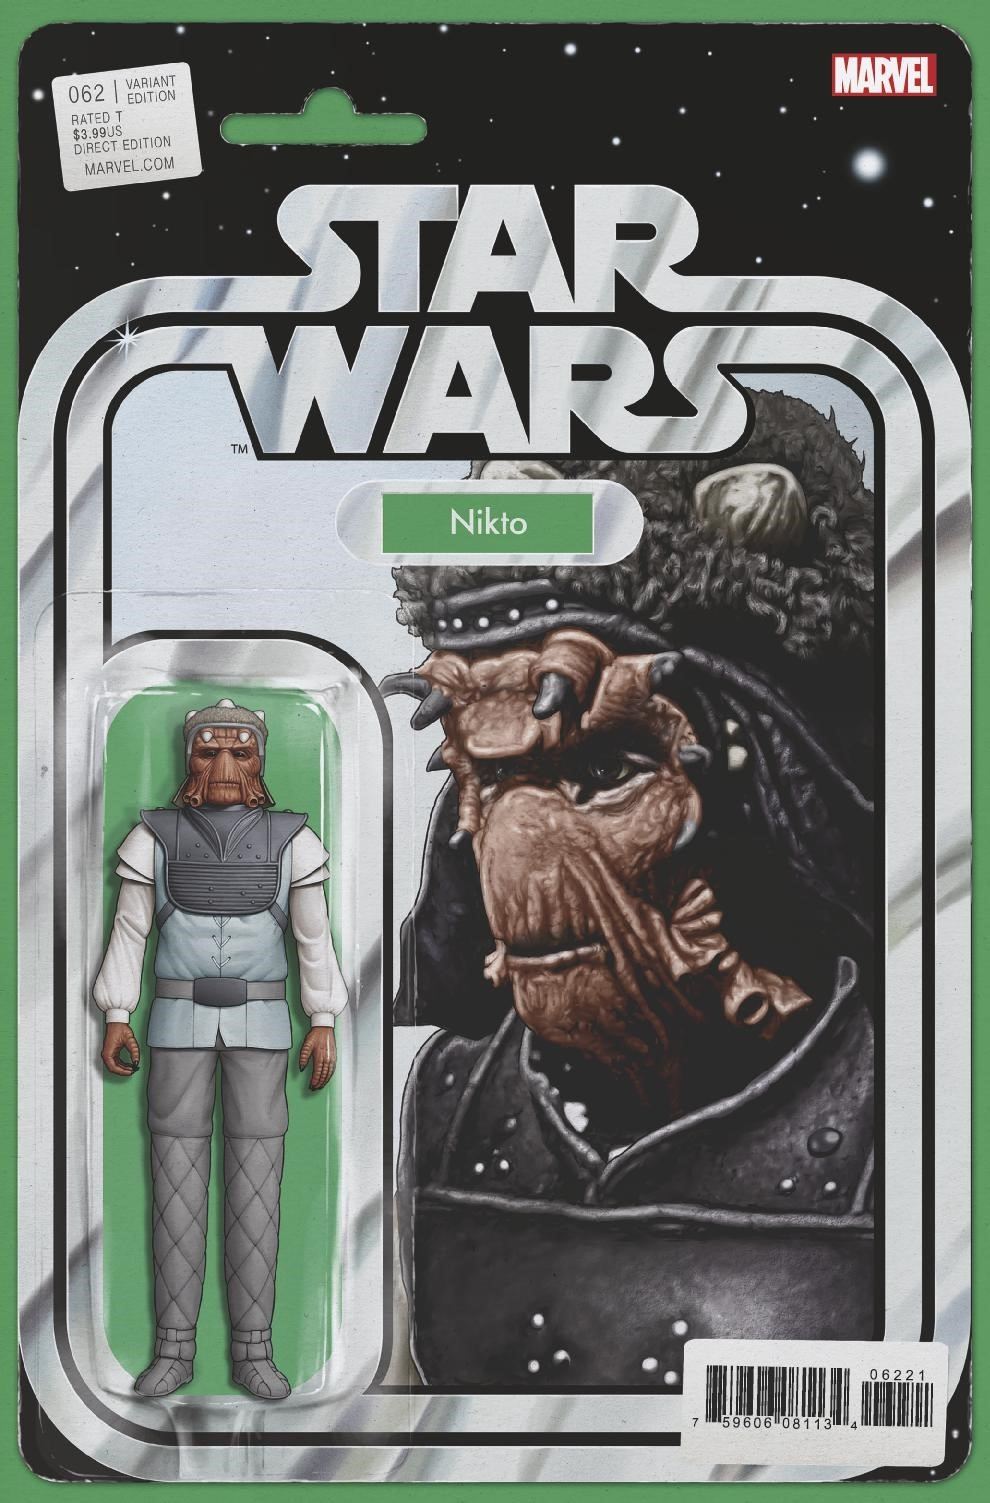 STAR WARS #62 CHRISTOPHER ACTION FIGURE VAR